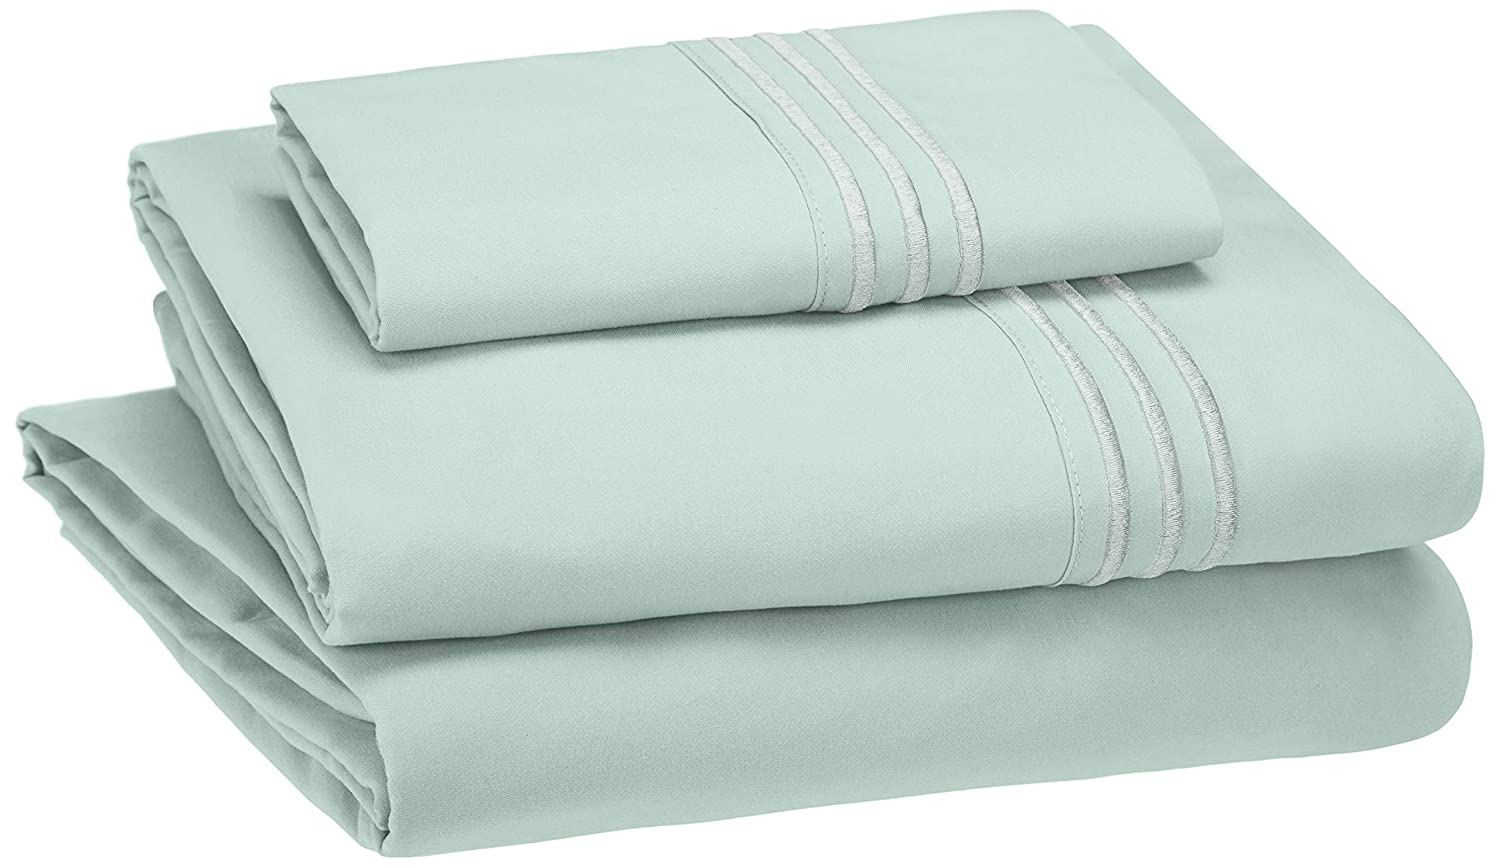 AmazonBasics Embroidered Hotel Stitch Sheet Set - Premium, Soft, Easy-Wash Microfiber - Twin, Seafoam Green